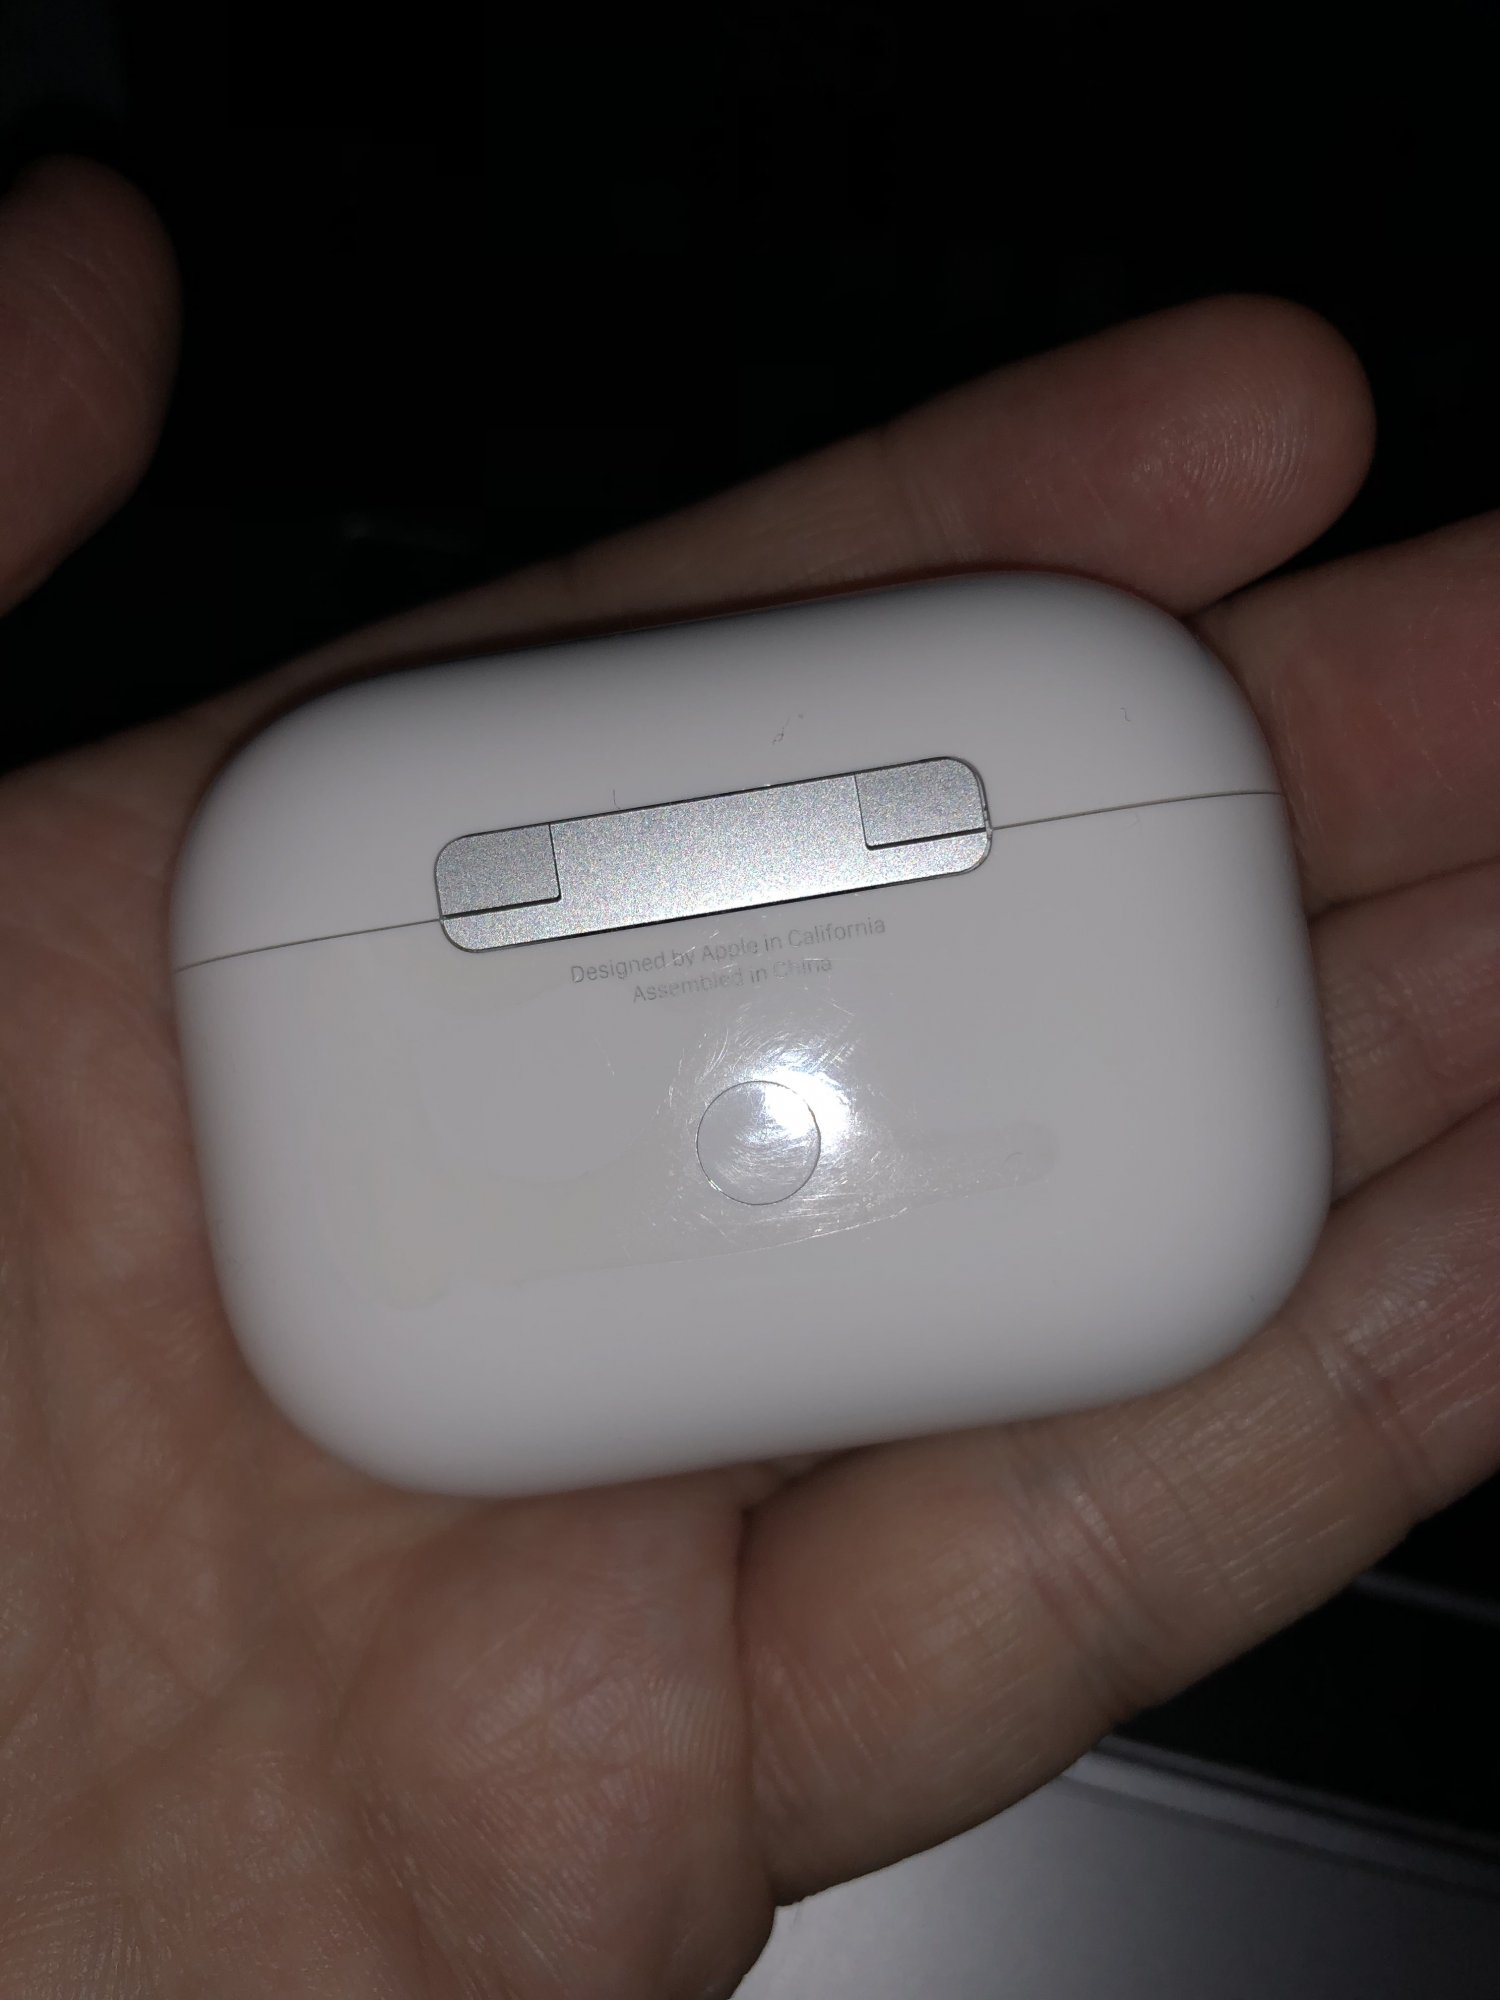 Did My Qi Certified Wireless Charger Leave Stains On My Airpods